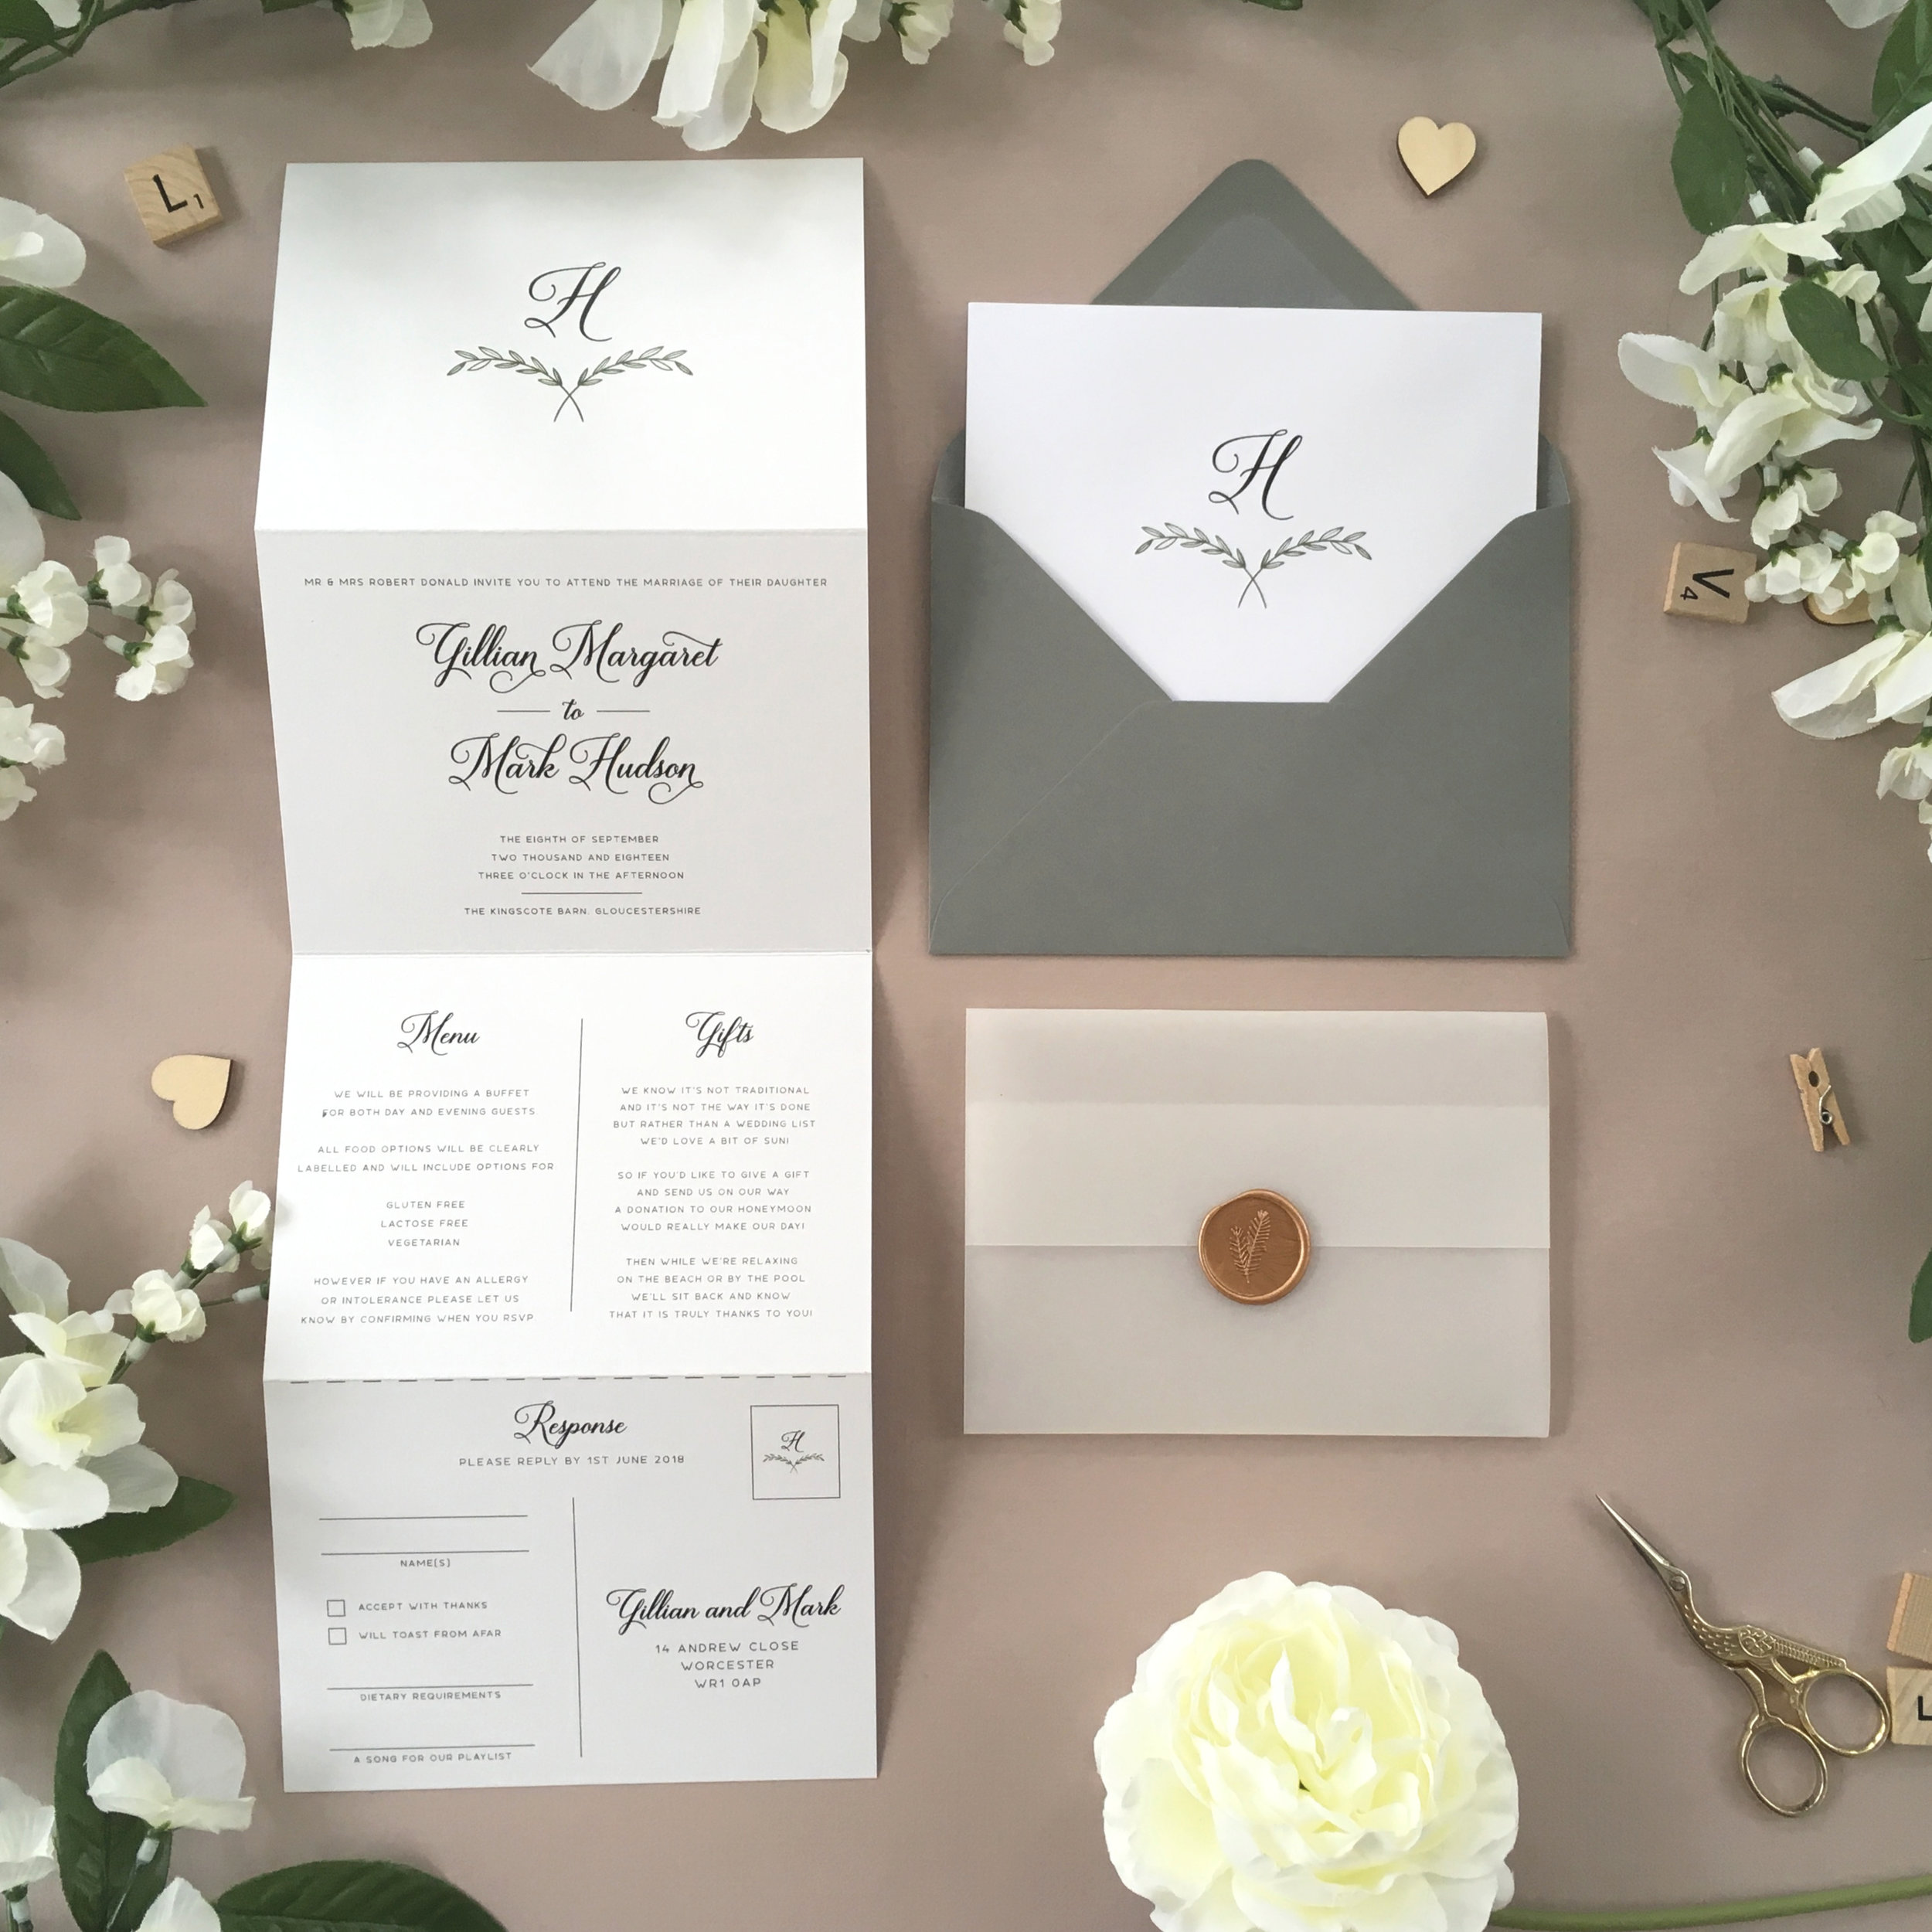 Paddington - Our Paddington collection uses a traditional, elegant style, using a monogram of the to-be-weds' surname on this concertina wedding invitation (which can be replaced with initials if required!).Our concertina invitations are a great all-in-one solution, with a detachable RSVP at the bottom of the invitation - all guests need to do is fill in their details, put a stamp in the corner and post!Concertina invitations can be provided on an as-is basis, or can be provided bound with a vellum jacket and timeless wax seal, or tied with ribbon or twine for a lovely hand-finished approach.- Concertina Invitation - from £1.95- Ribbon or Twine - £0.40- Vellum Jacket - £0.40- Wax Seal - £0.85 (Custom engraving also available)White envelope provided as standard with coloured upgrade available.